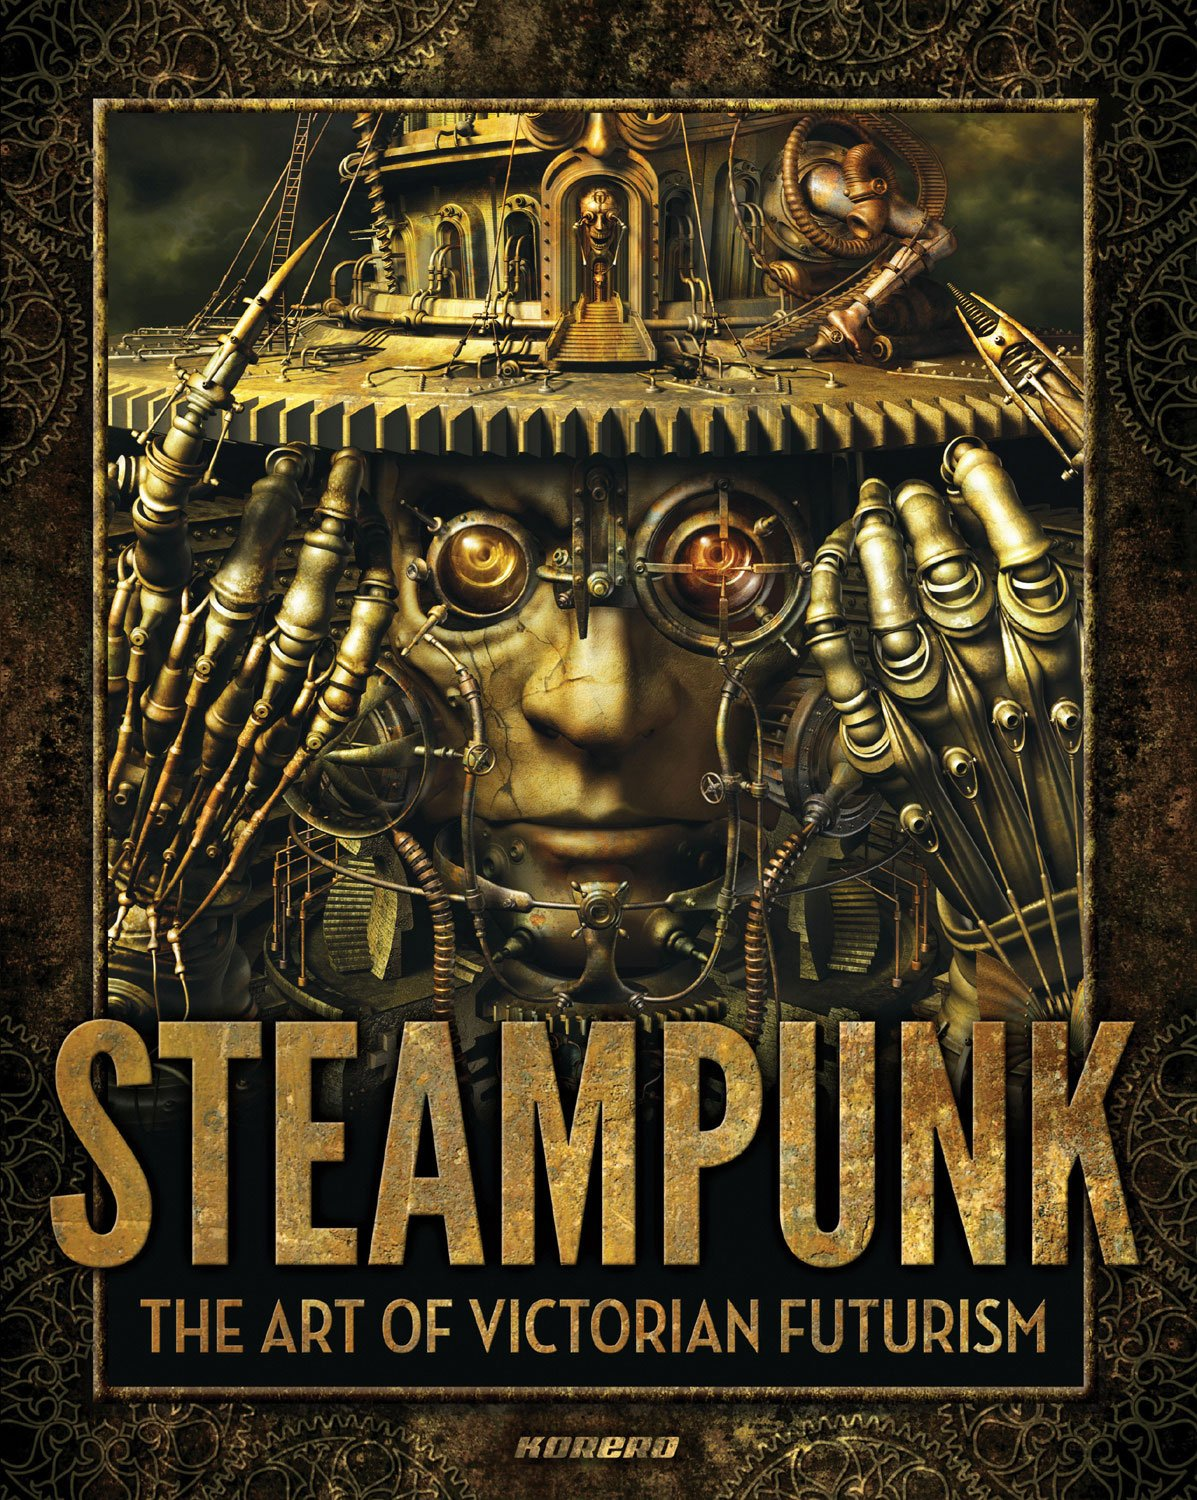 Download Steampunk: The Art of Victorian Futurism PDF